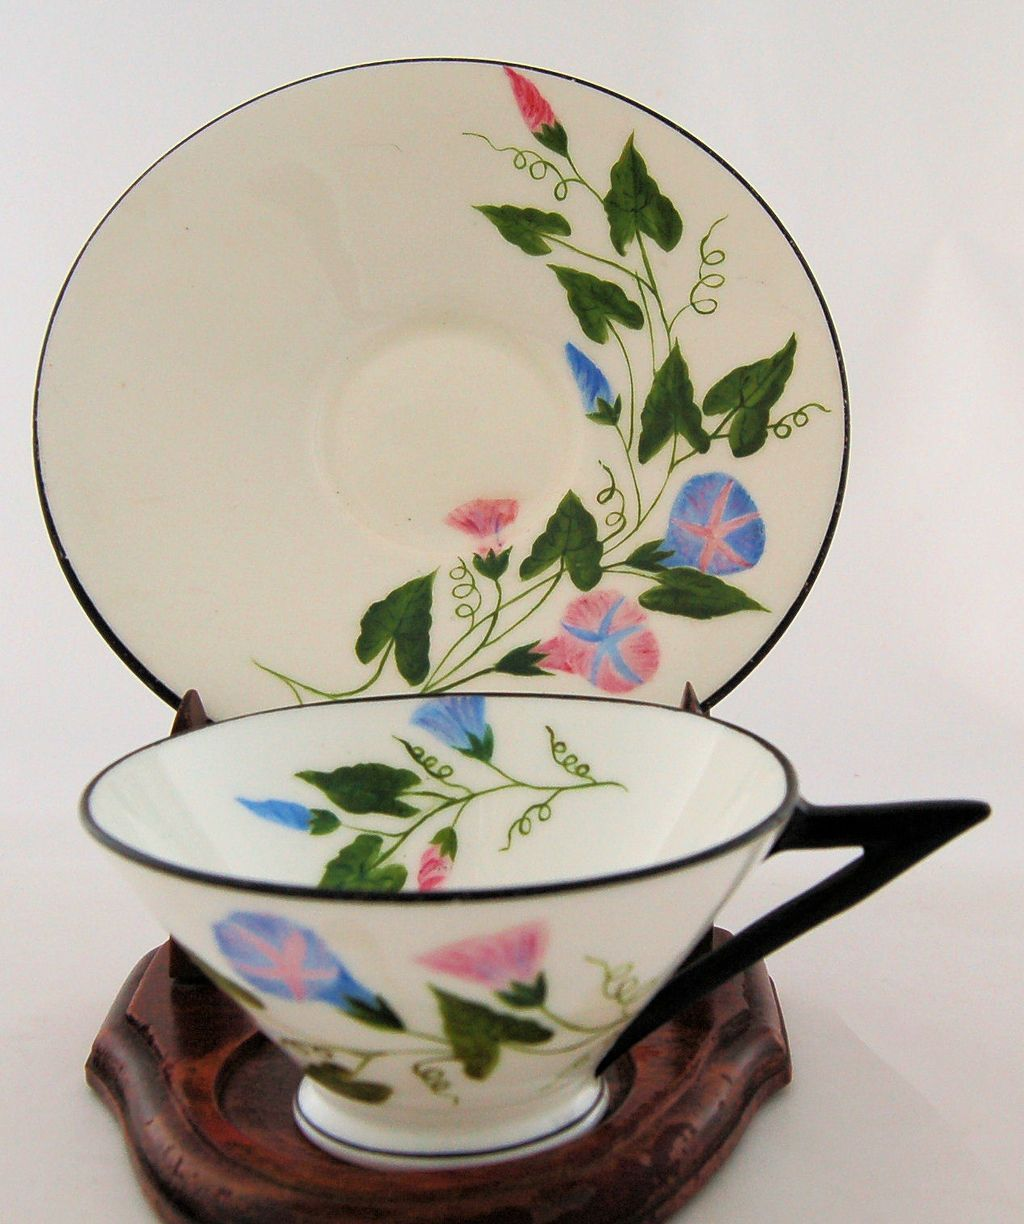 Antique Victorian Period Aesthetic Tea Cup and Saucer, ca. 1876